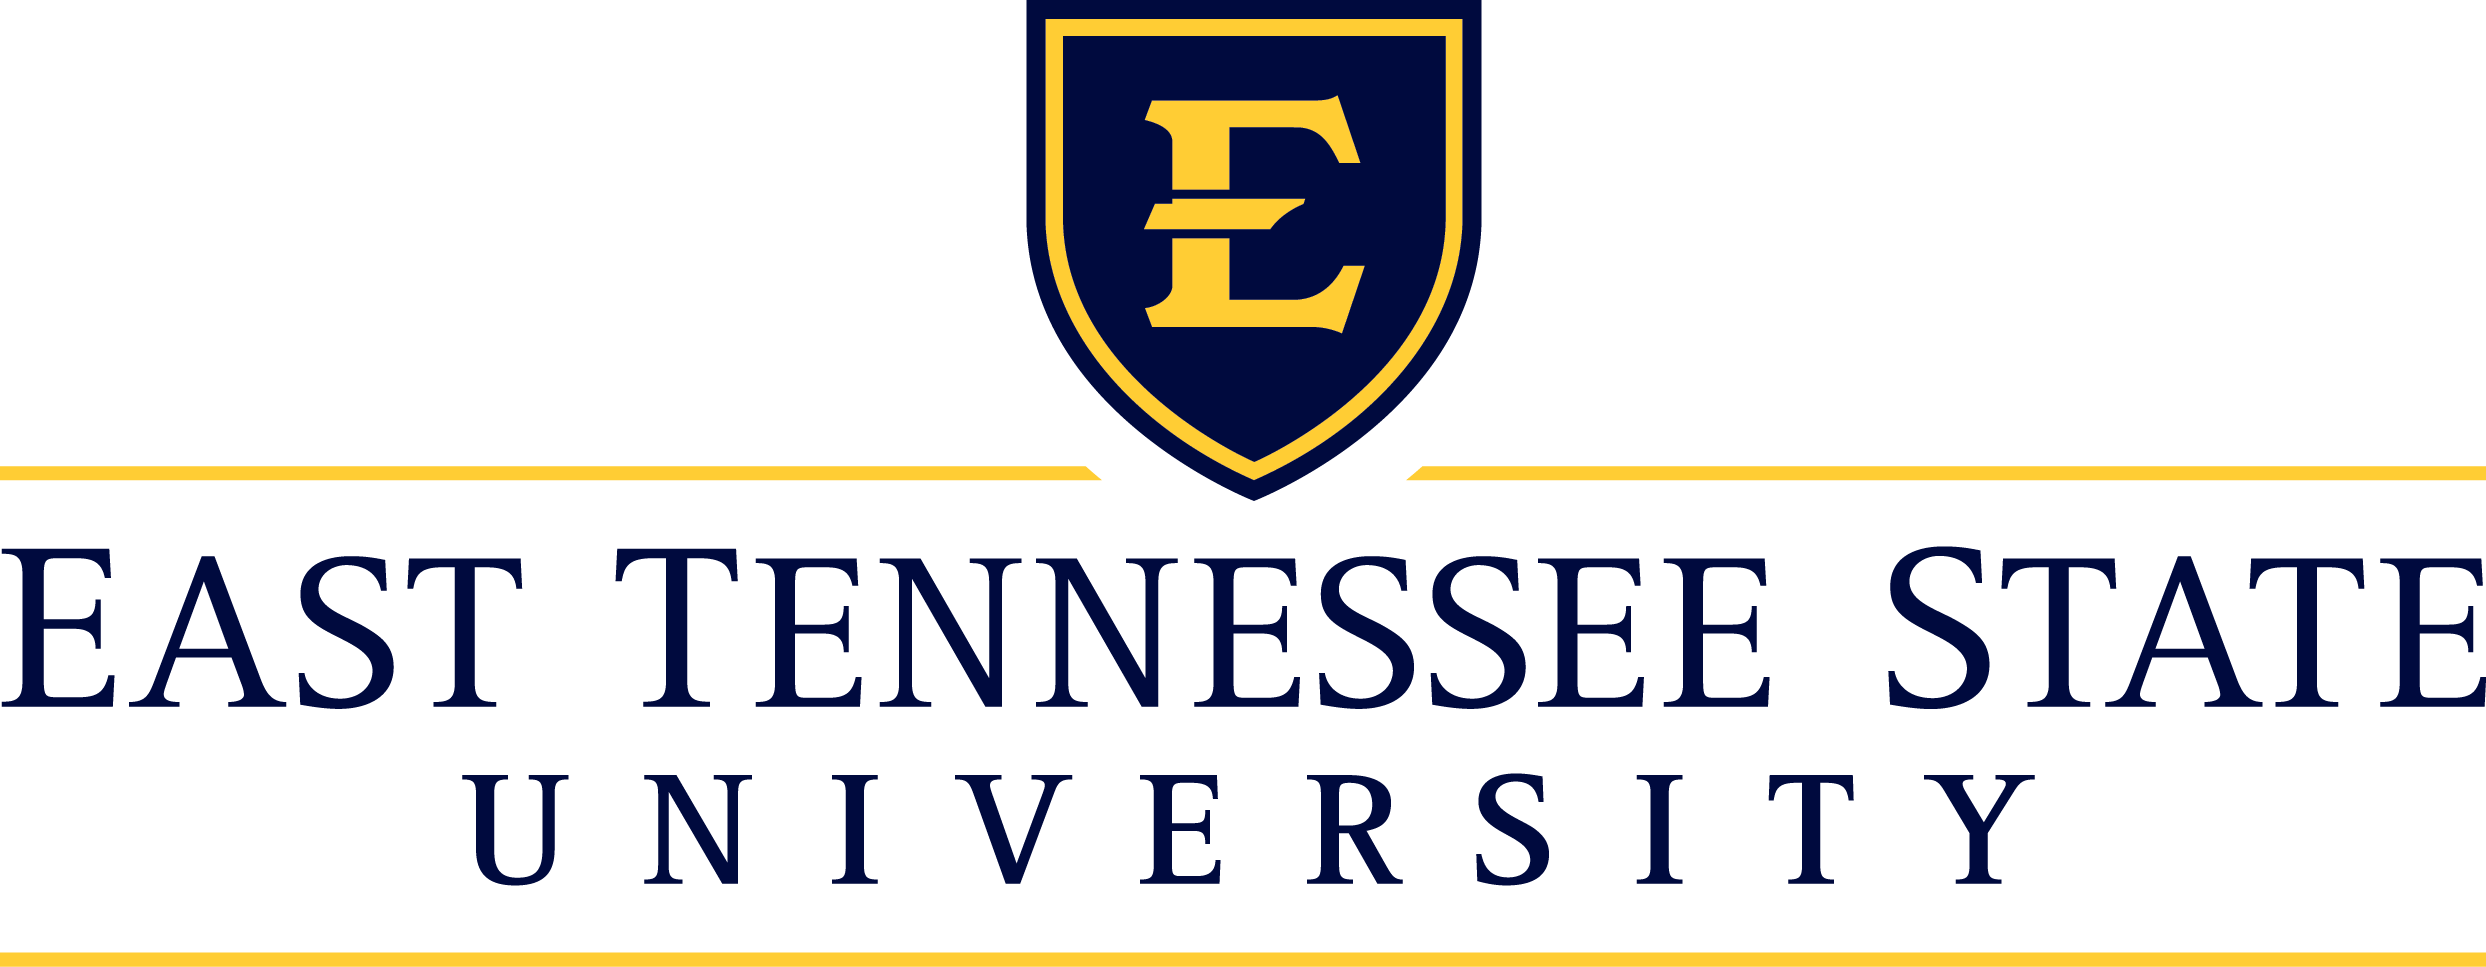 East Tennesse State